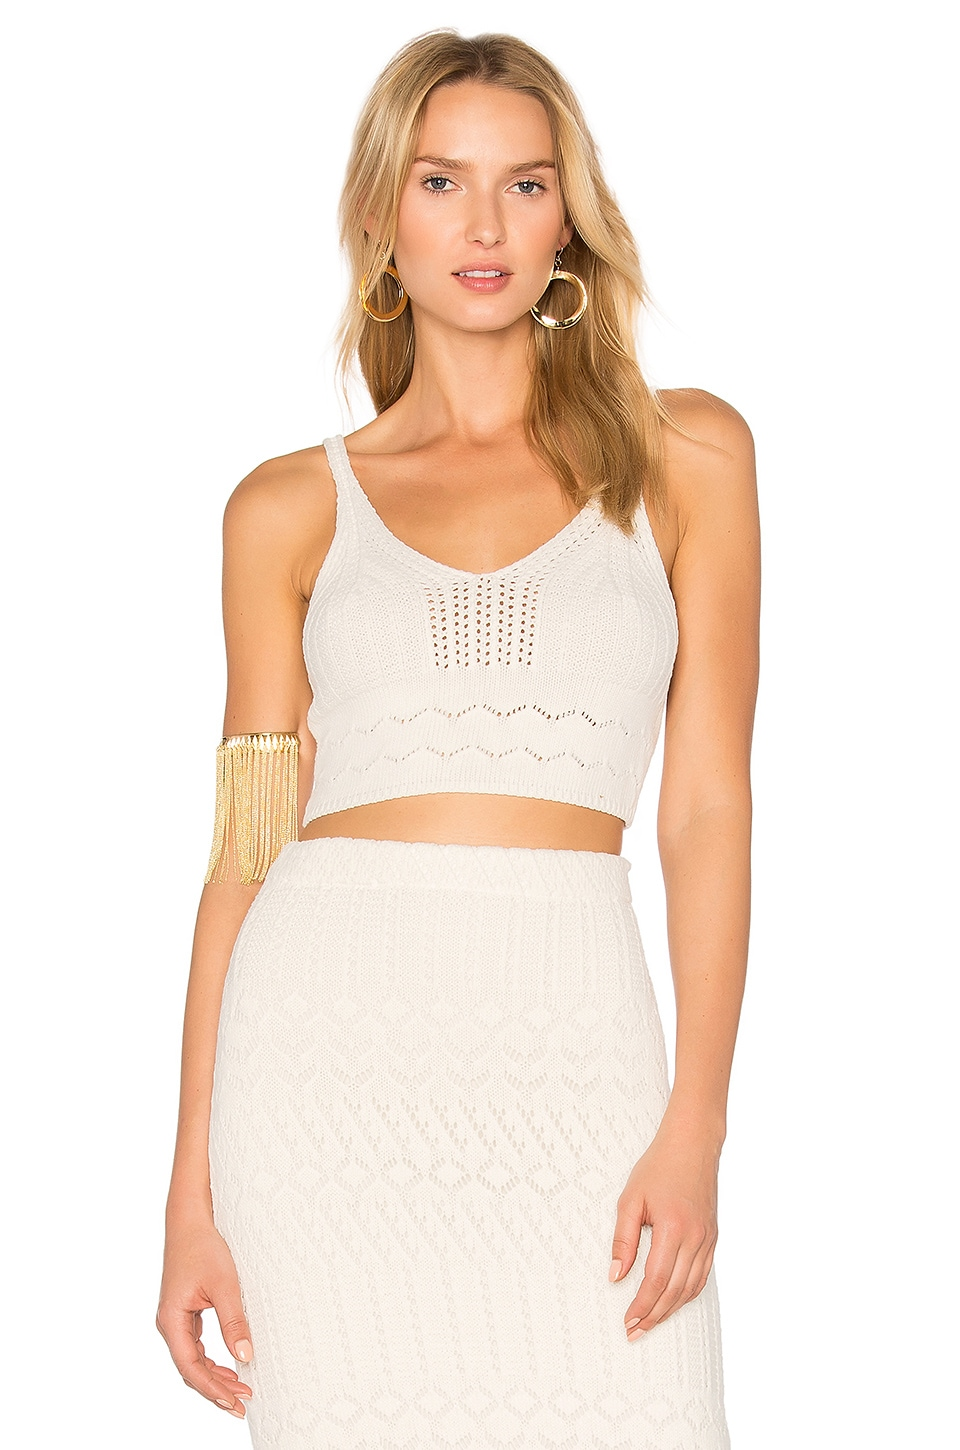 House of Harlow 1960 X REVOLVE Quinn Top in White